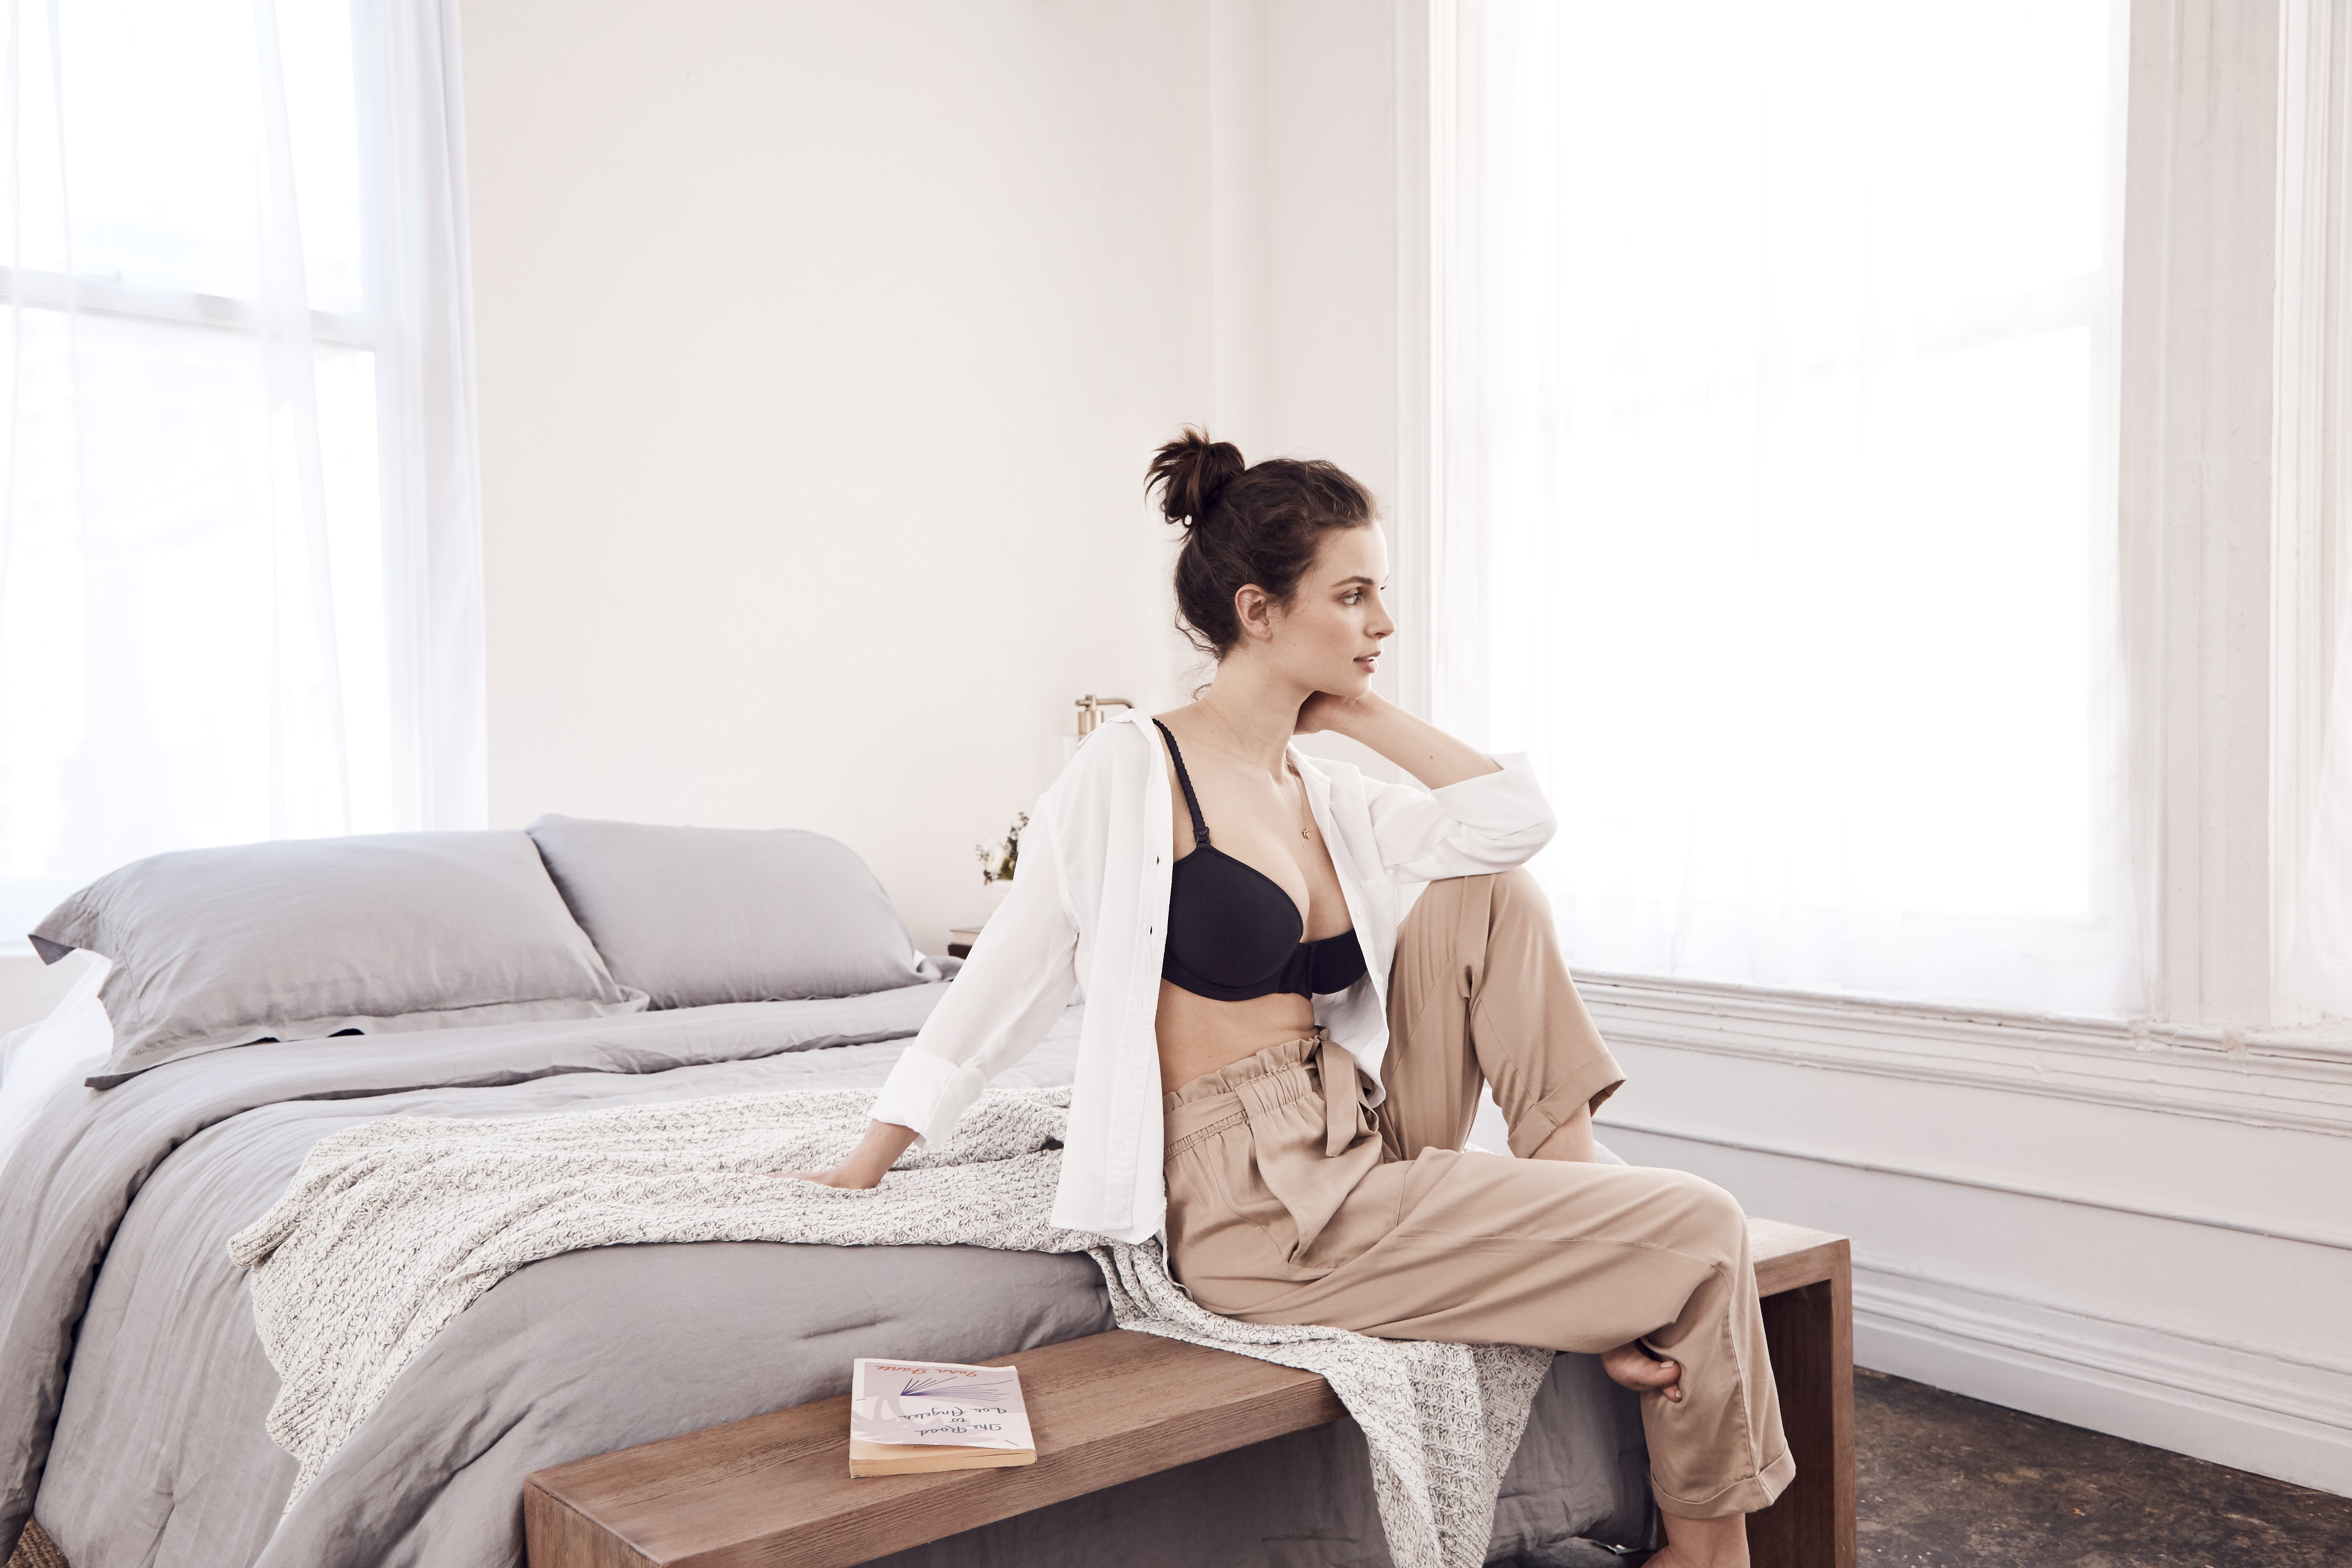 A woman sits on a bed in a black bra and khaki pants